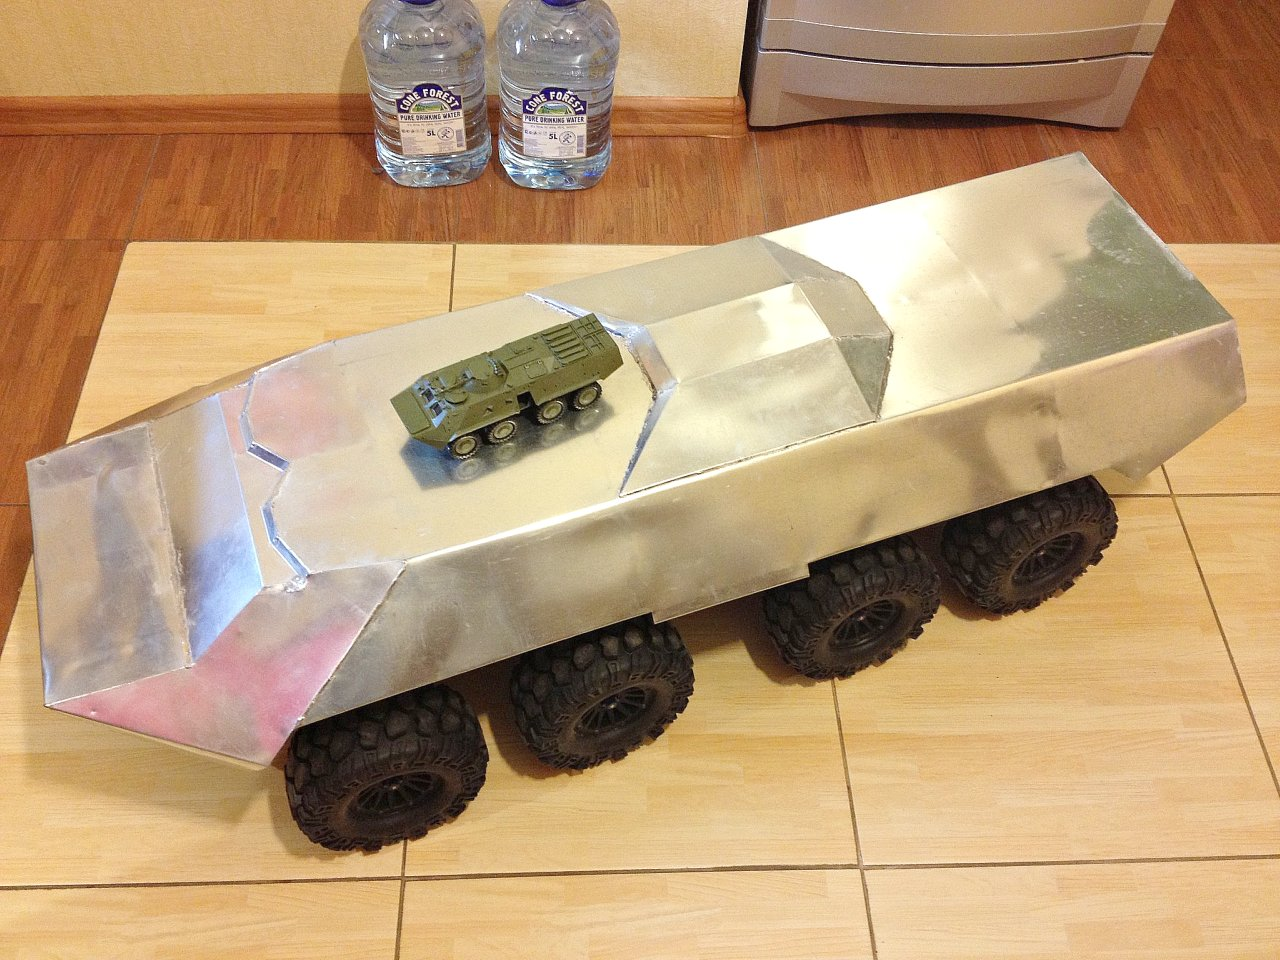 Rc It Music Photo Video Rc Btr 80 8x8 1 6 Scale Based On